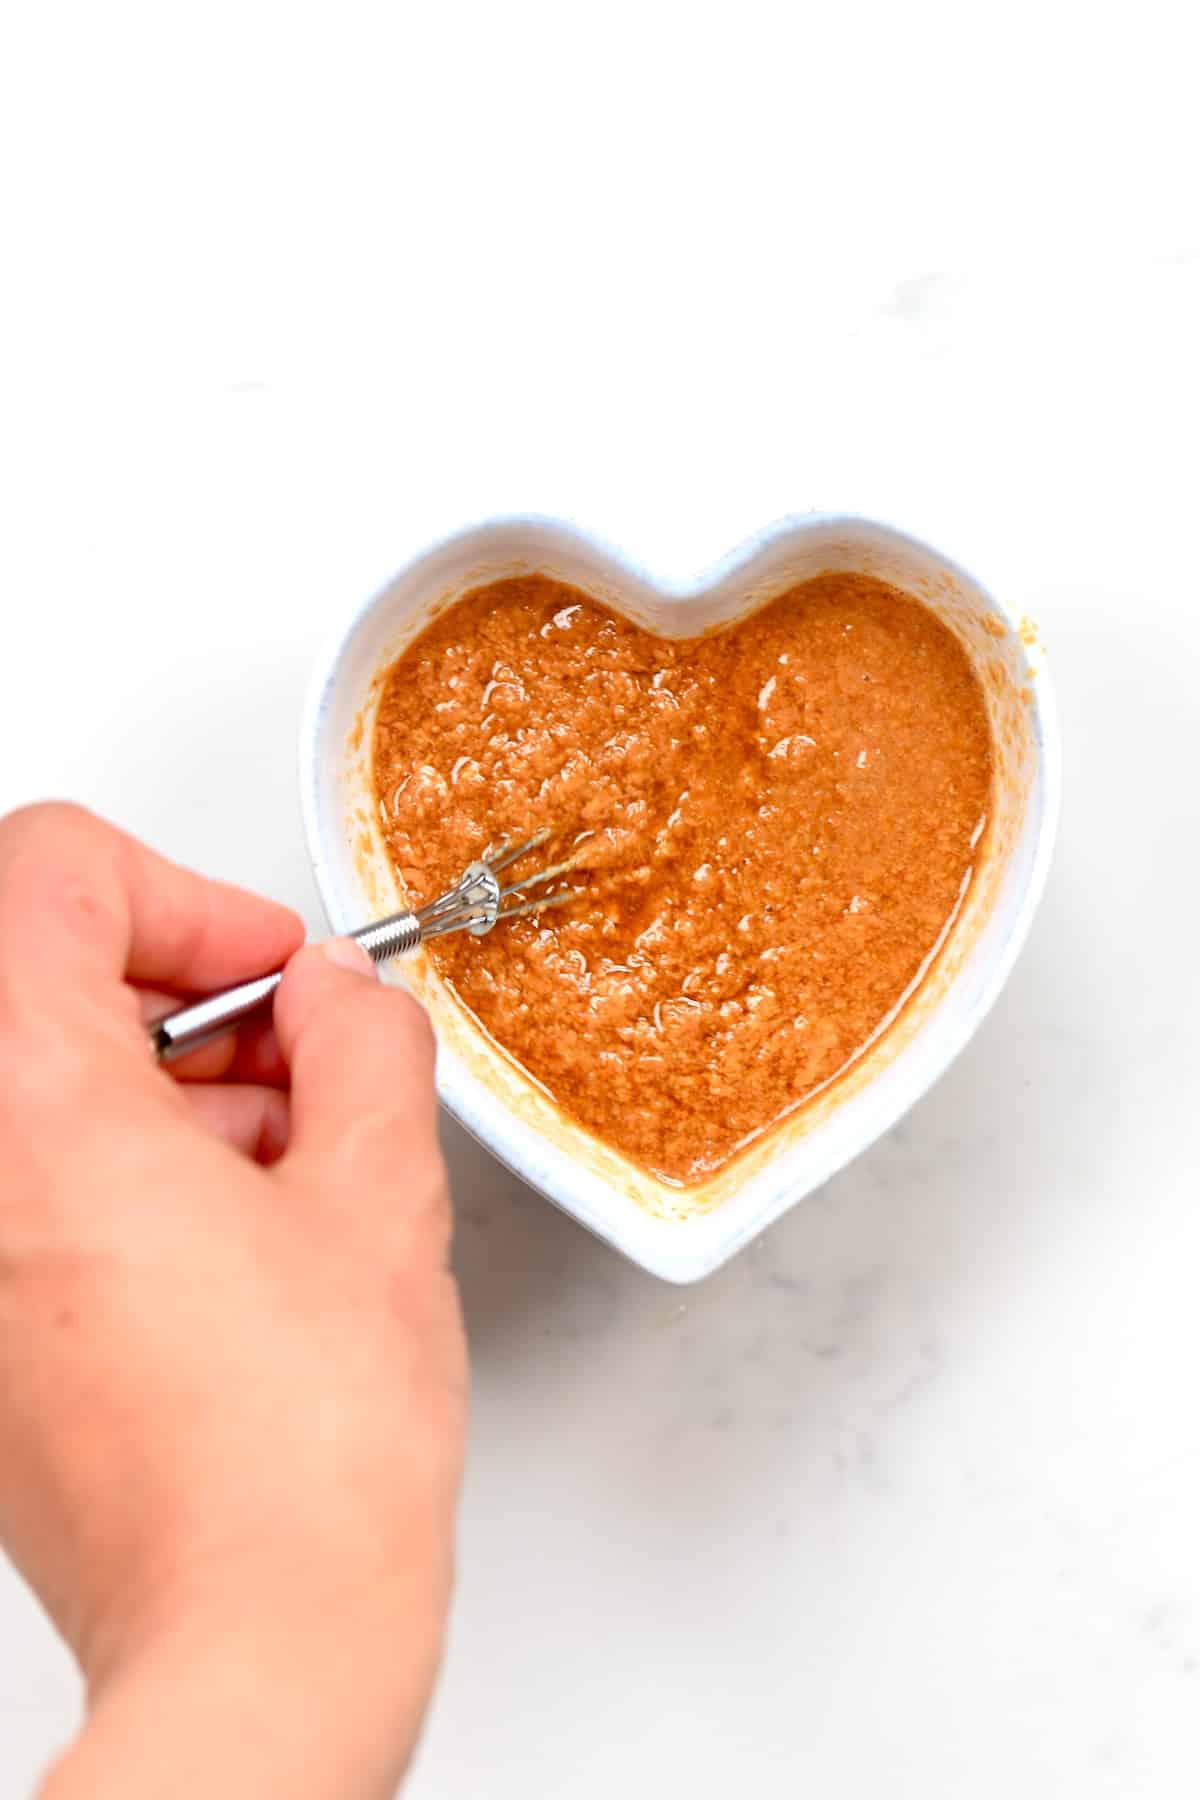 mixing the ingredients of Peanut Dipping Sauce